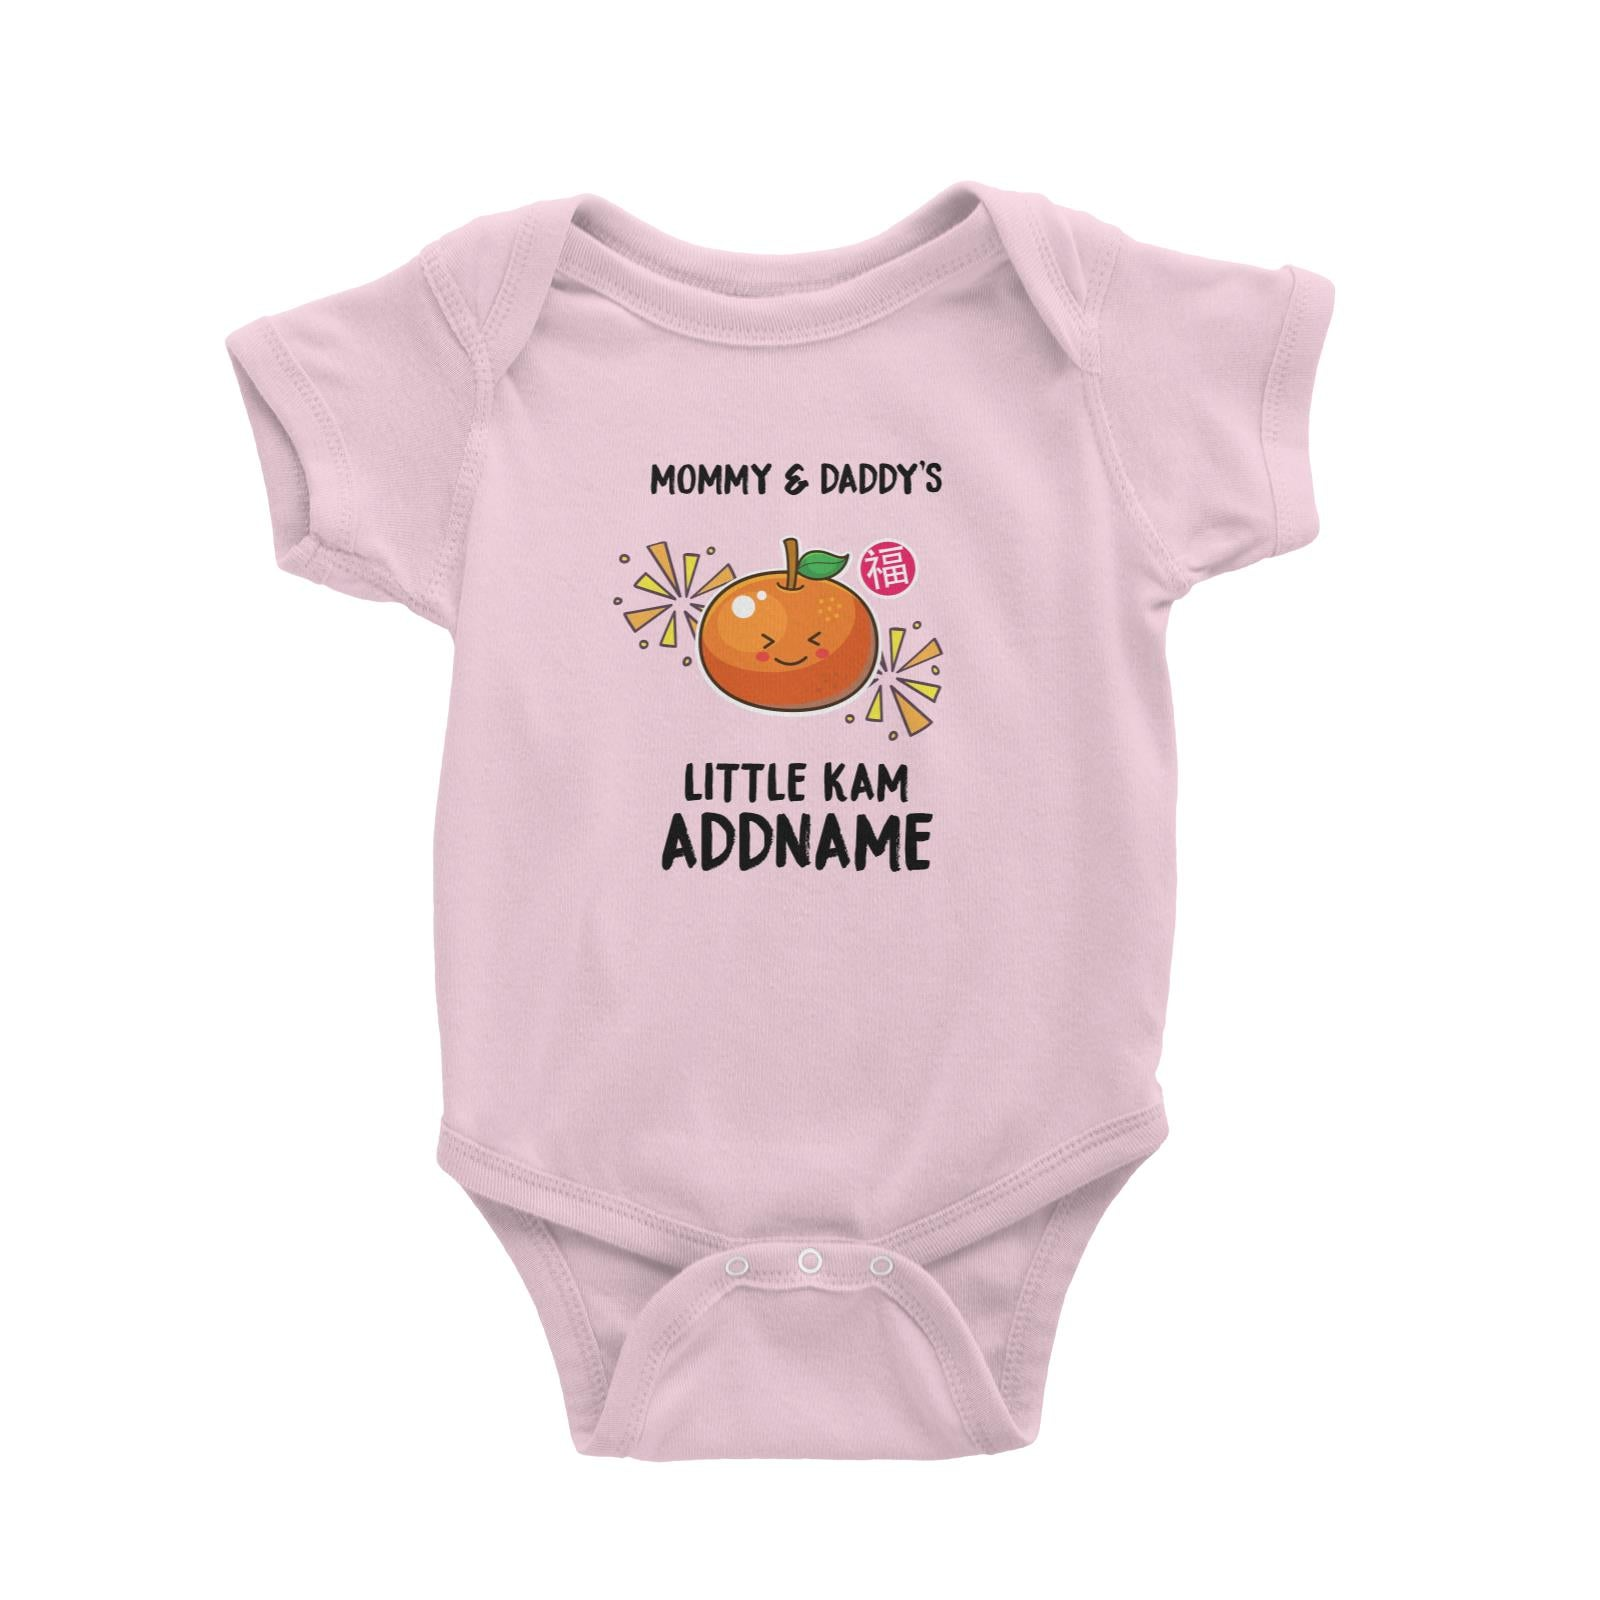 Chinese New Year Mommy and Daddy's Little Kam Baby Romper  Personalizable Designs